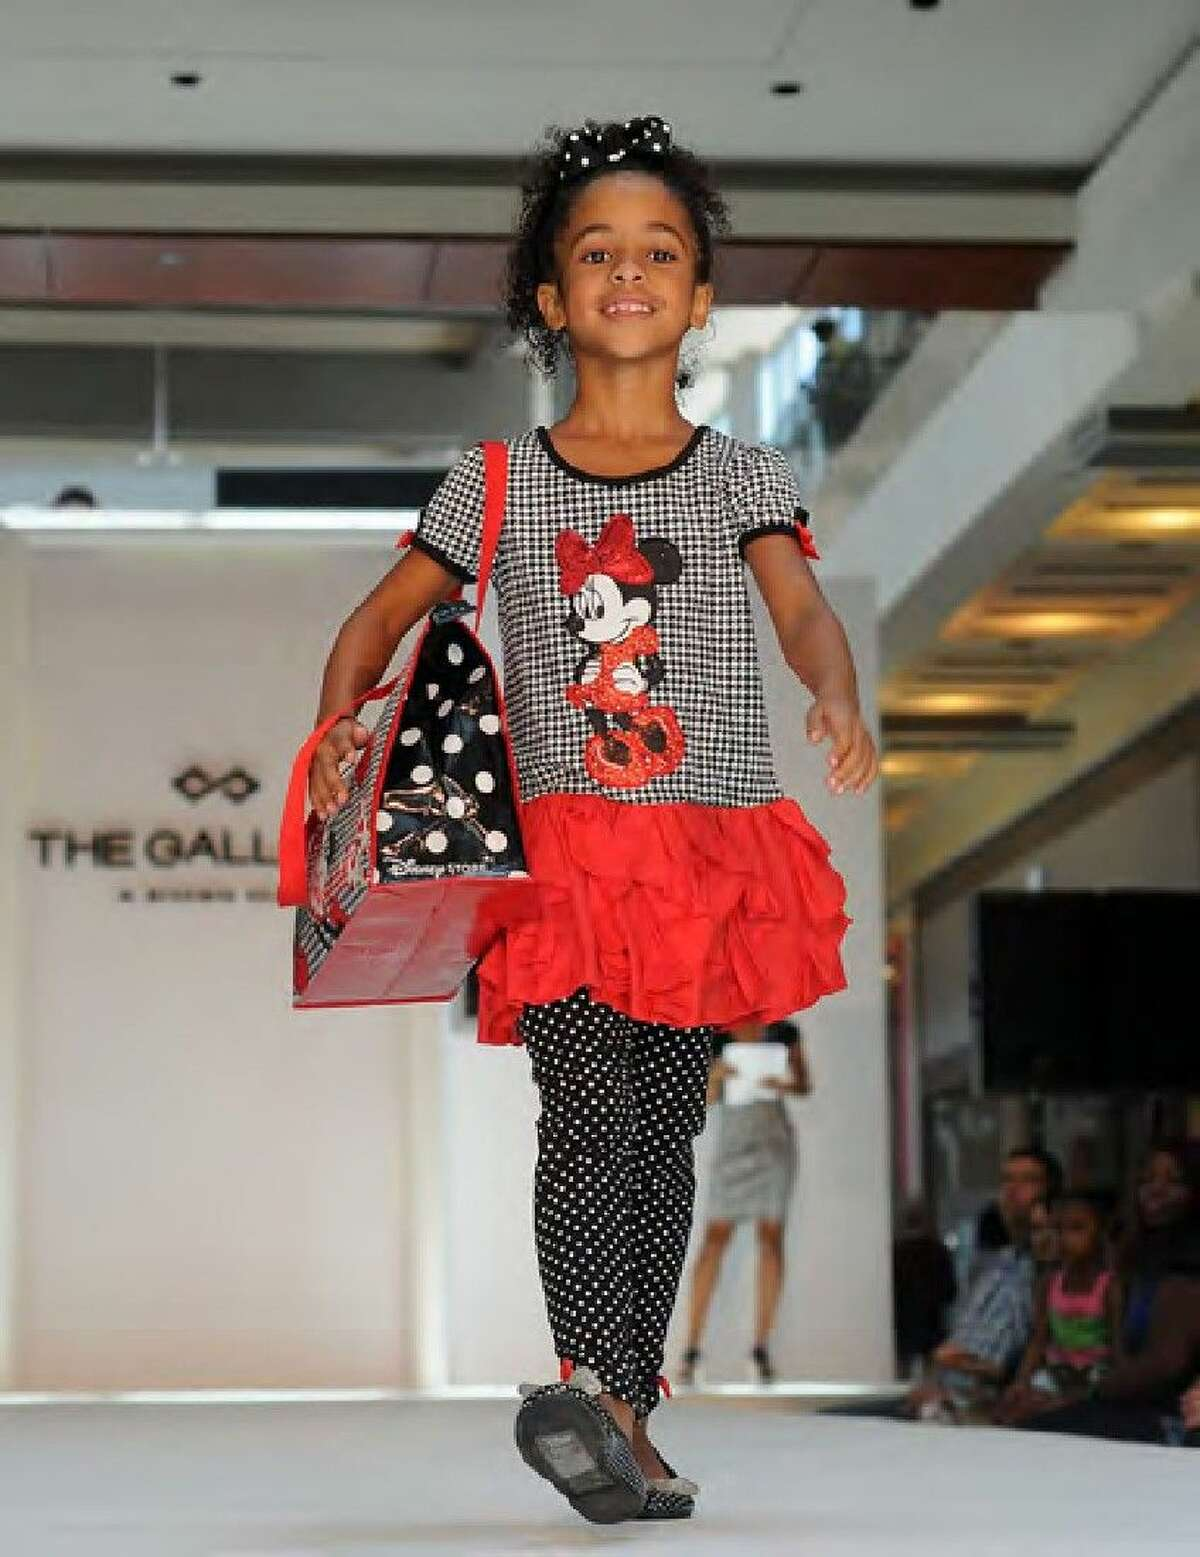 The Galleria will host their annual Back-to-School Bash and Fashion Show during Tax Free weekend on Saturday, August 8 from 12-2 p.m. Shoppers will enjoy family-friendly activities and a Fashion Show at 1 p.m. Sit back and relax as children, including pediatric cancer patients, and MD Anderson physicians highlight this season's popular trends on the runway.